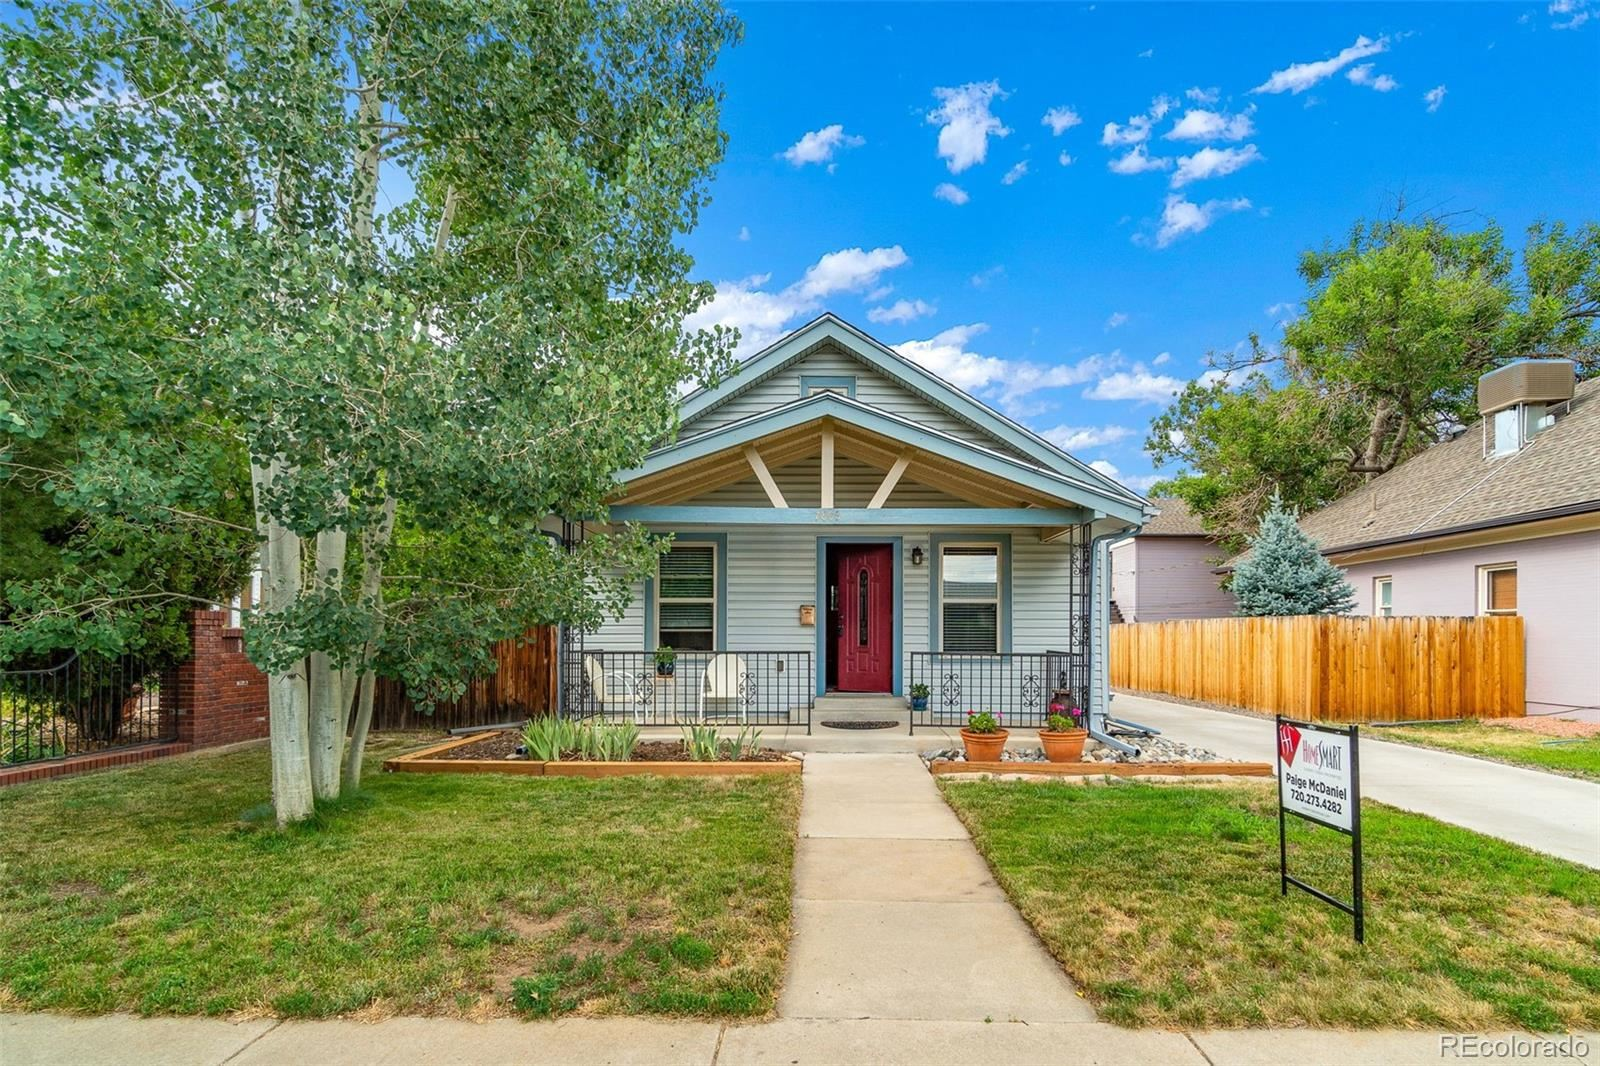 7803 Grandview Avenue, Arvada, CO 80002 - #: 6462888